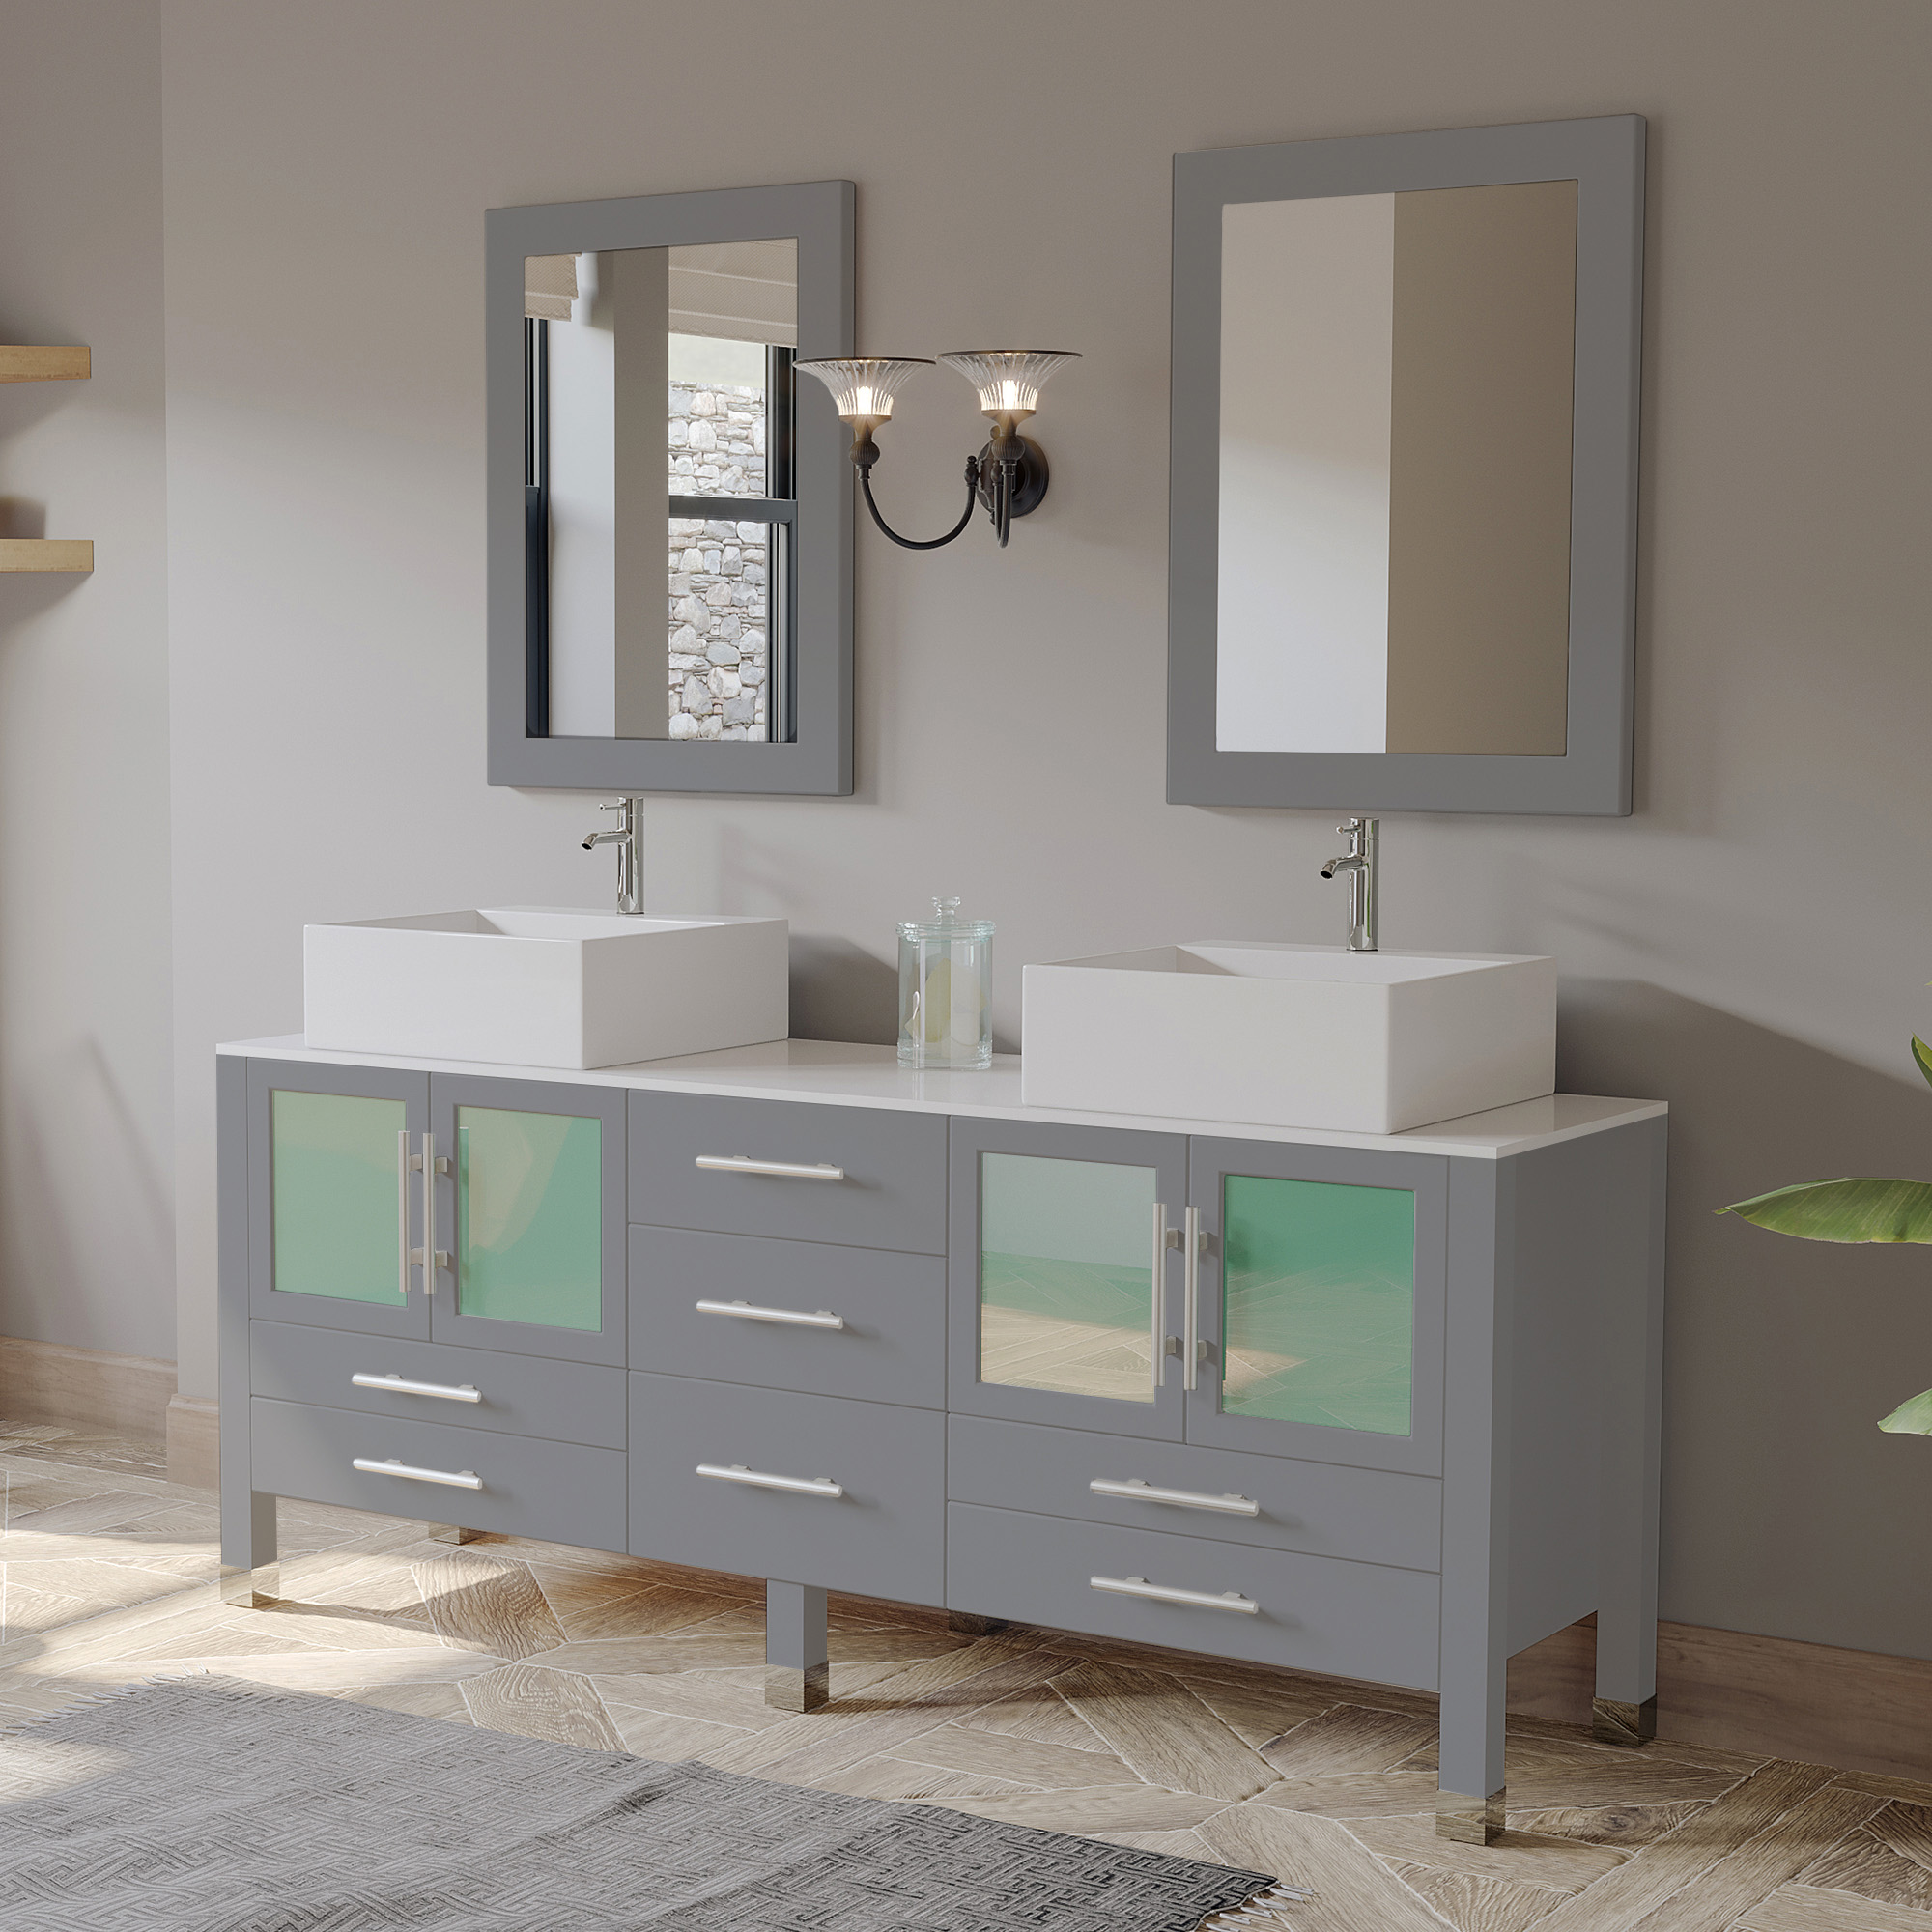 "71"" Double Sink Bathroom Vanity Set in Gray Cabinet Finish with Polished Chrome Plumbing"